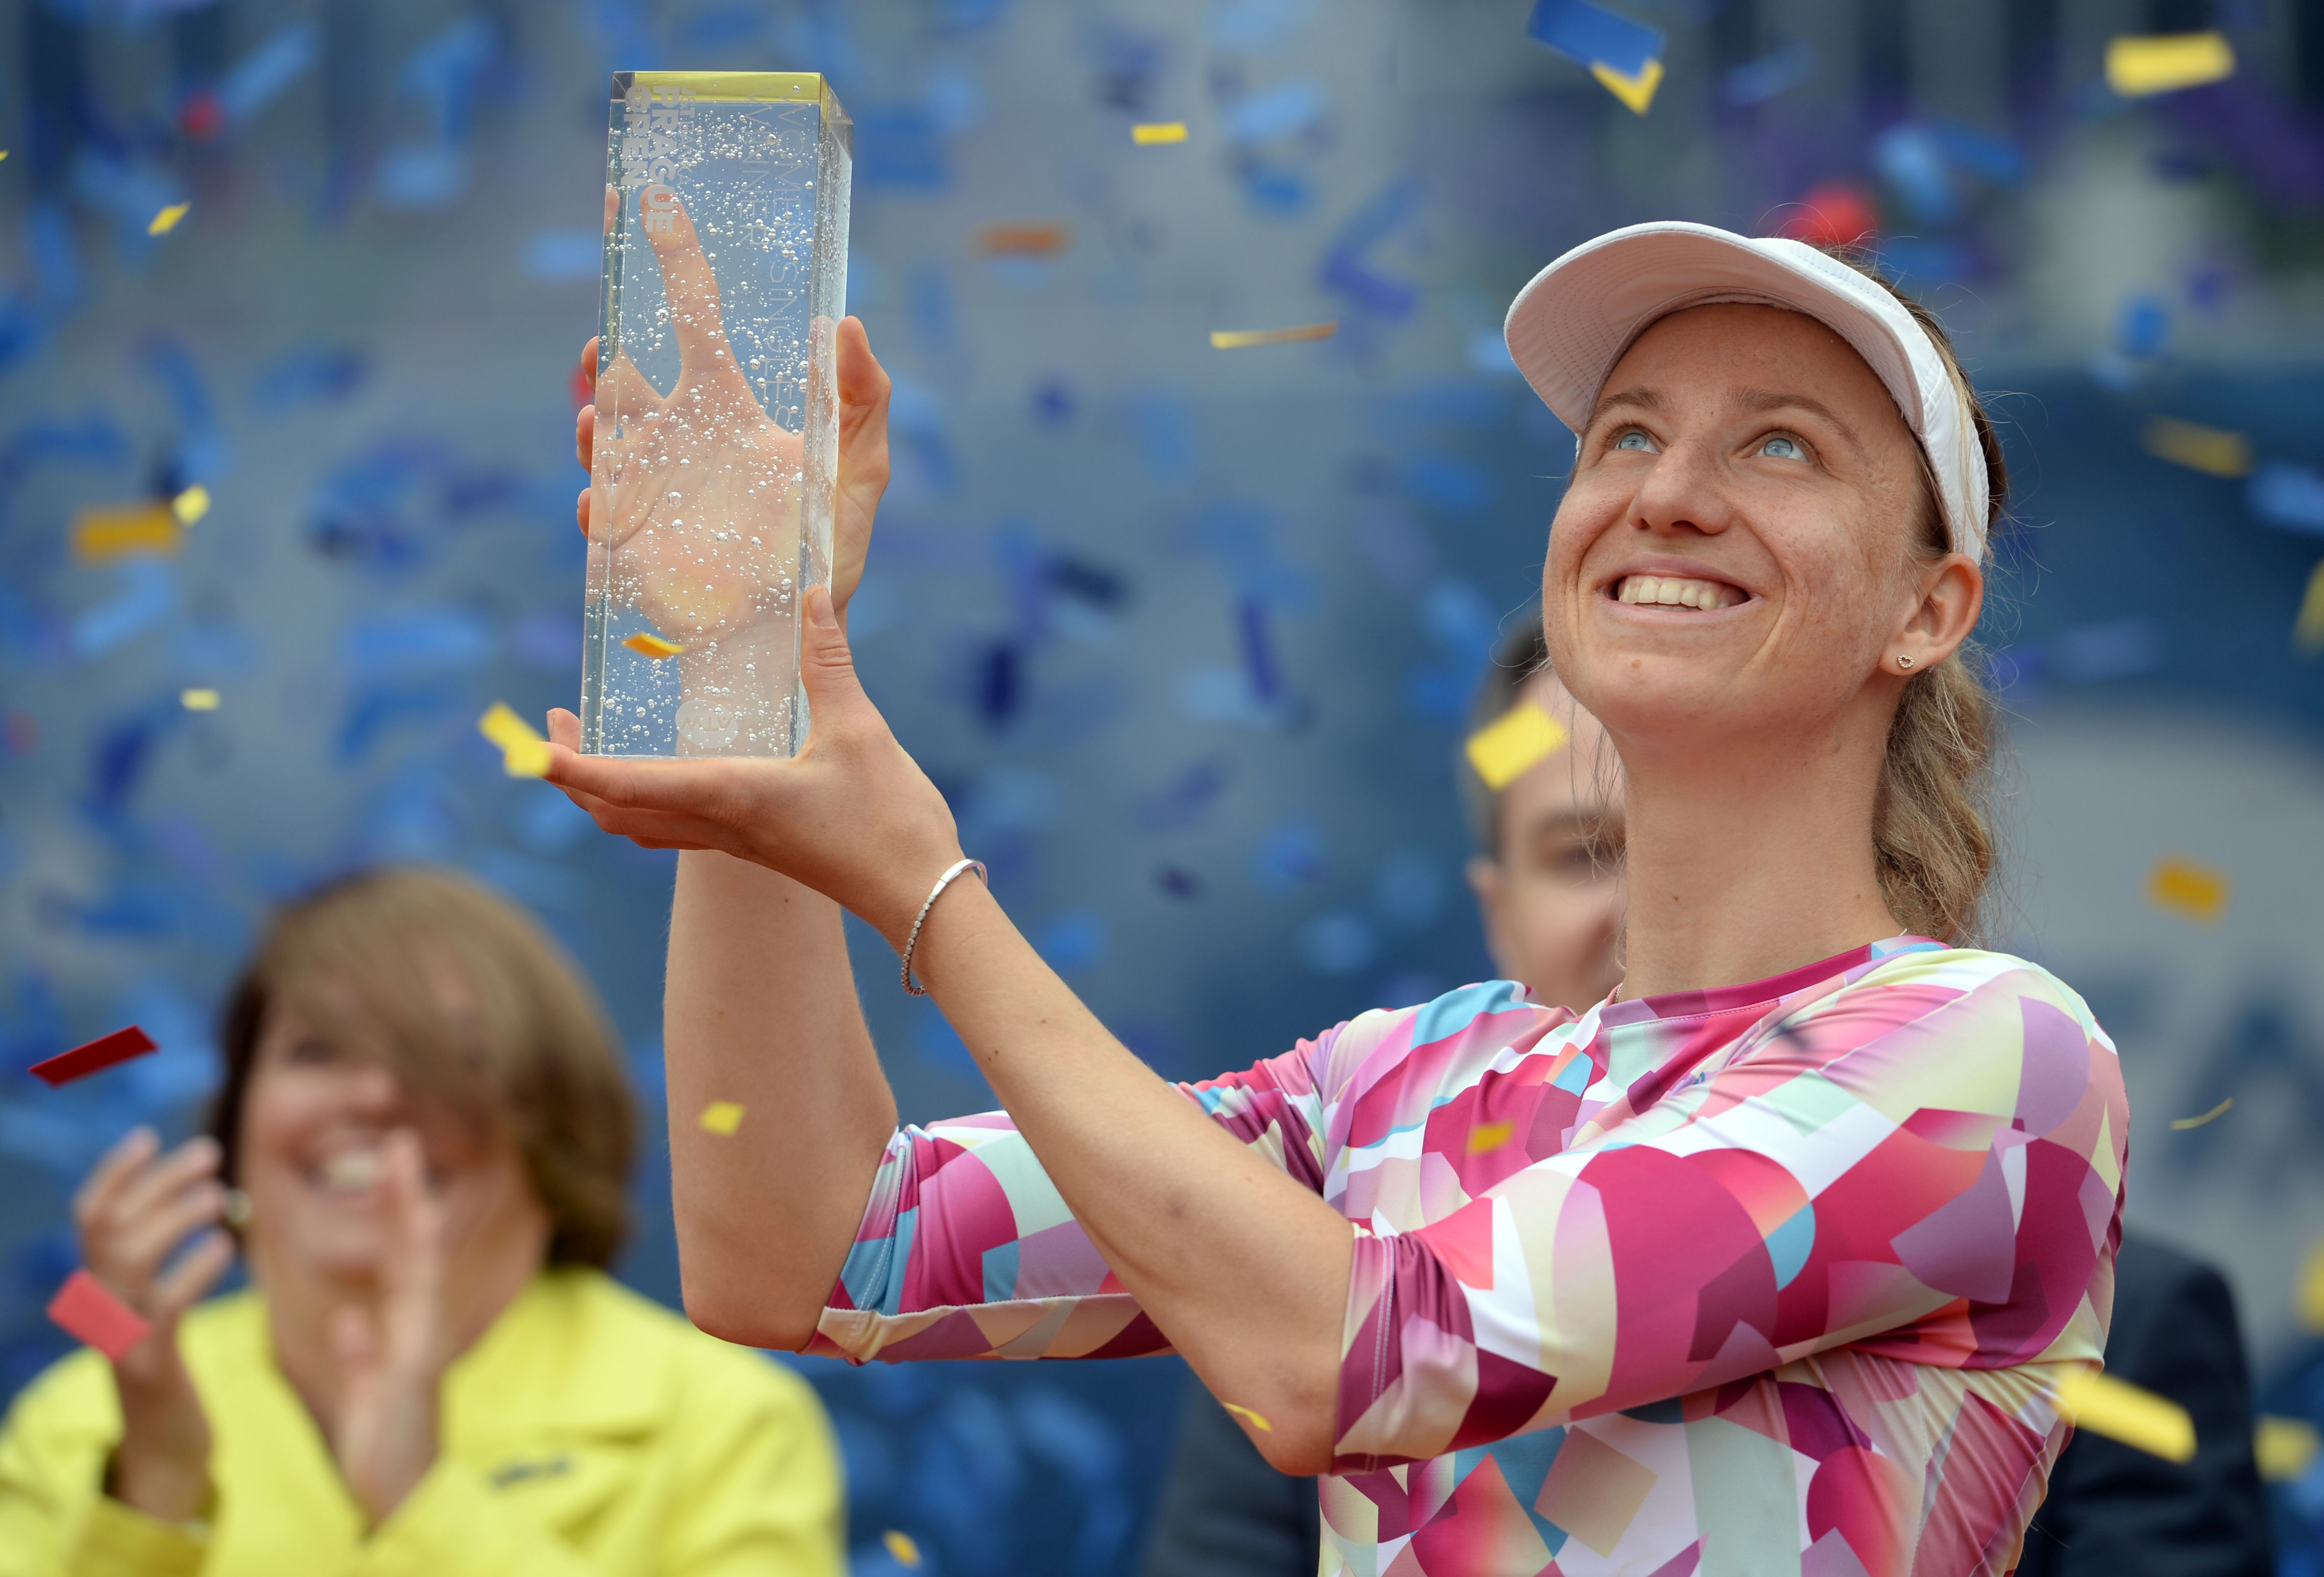 German Mona Barthel poses with the trophy after winning over Czech's Kristyna Pliskova during their final tennis match at the Prague Open on May 6, 2017 in Prague. / AFP PHOTO / Michal Cizek (Photo credit should read MICHAL CIZEK/AFP/Getty Images)